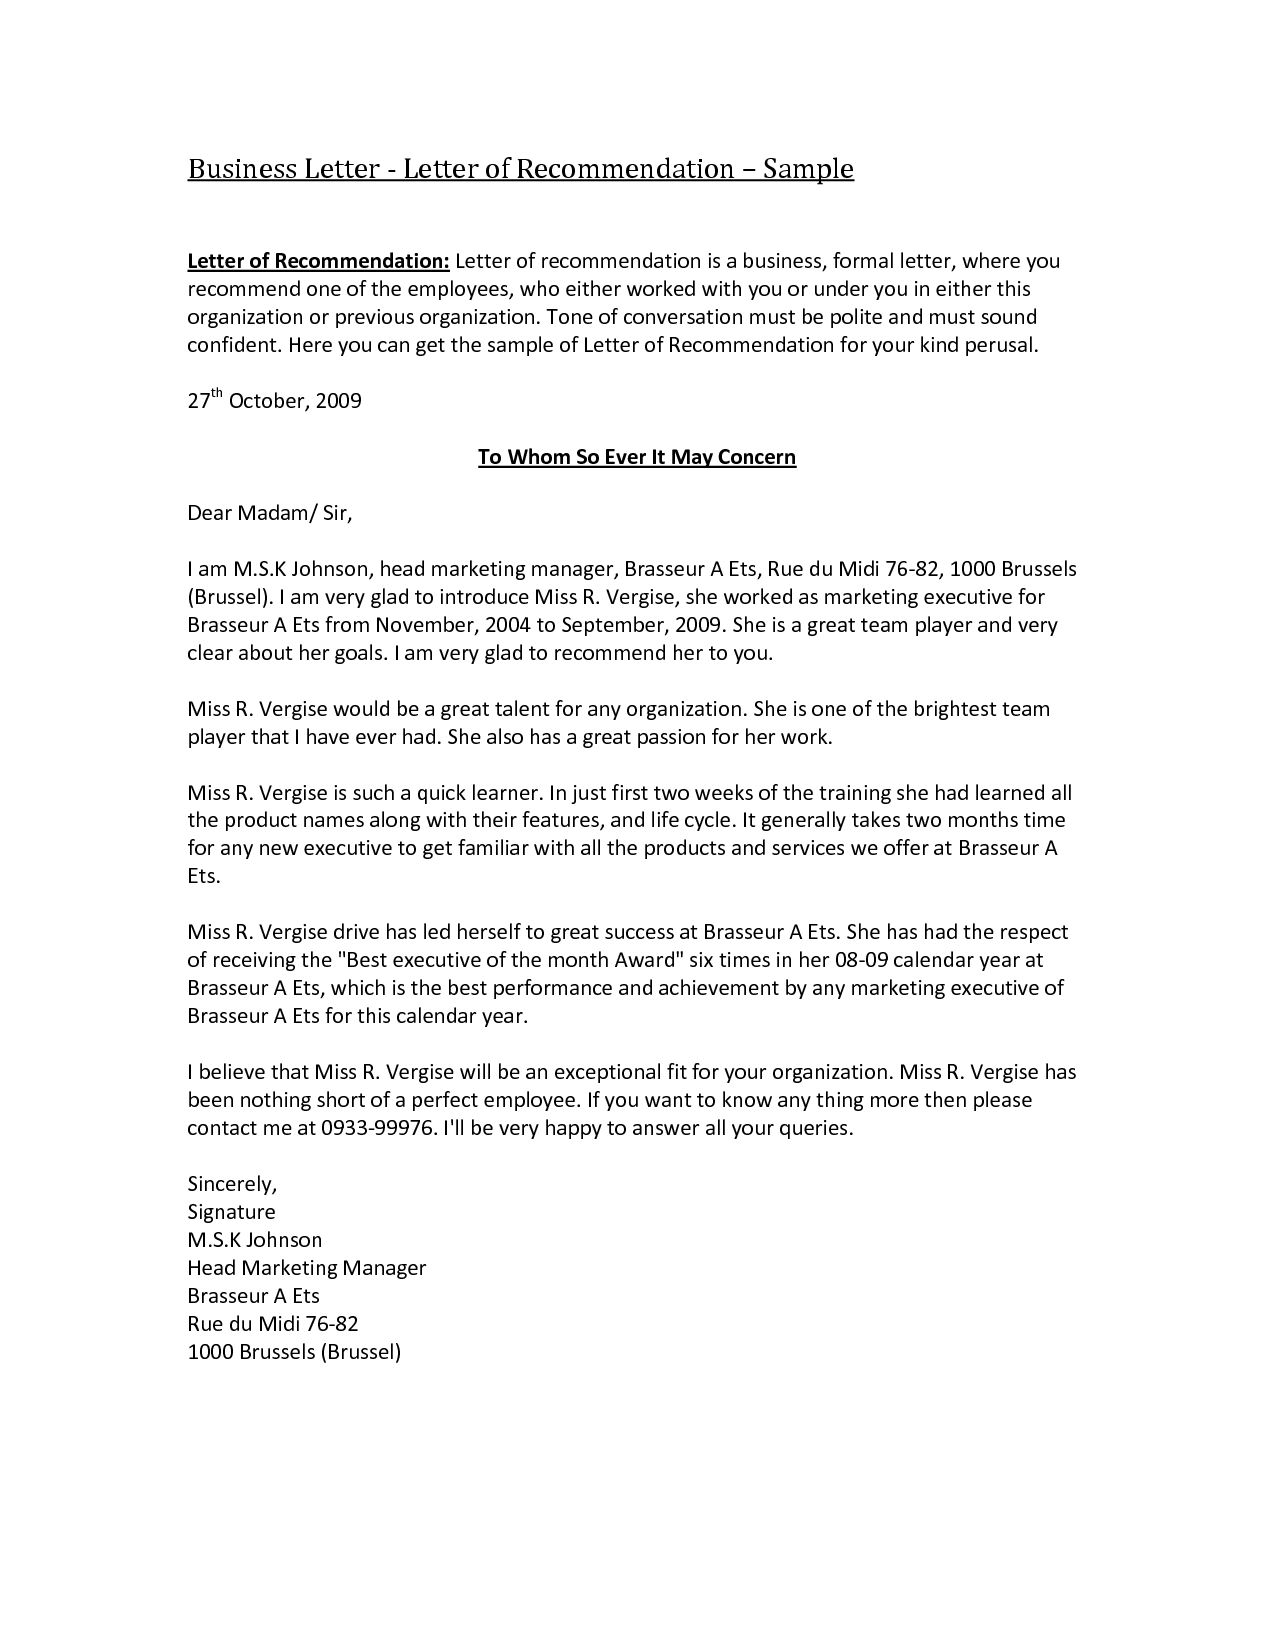 Business Reference Letter Template Word Collection